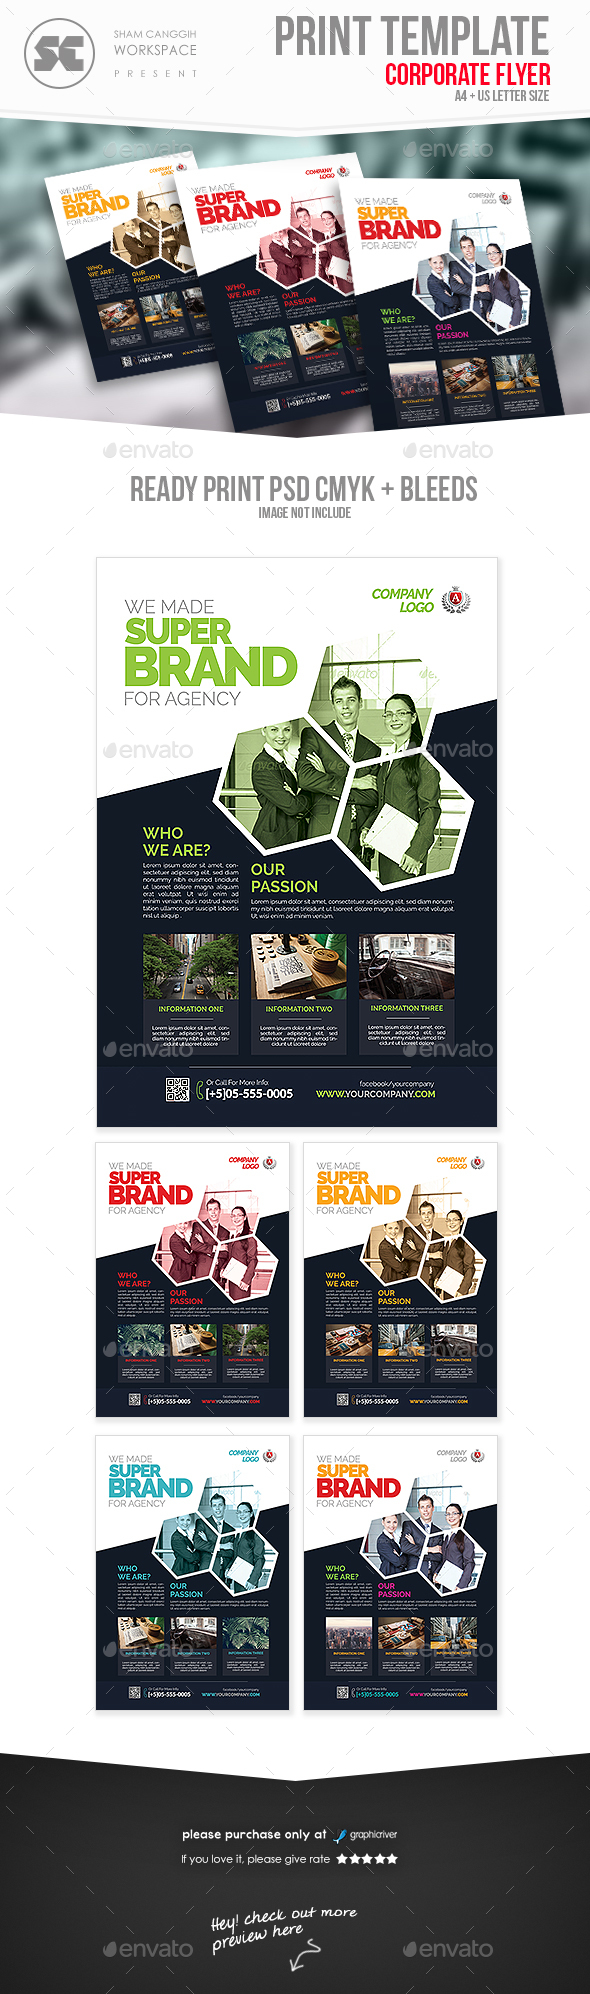 Corporate Agency Flyer  - Corporate Flyers